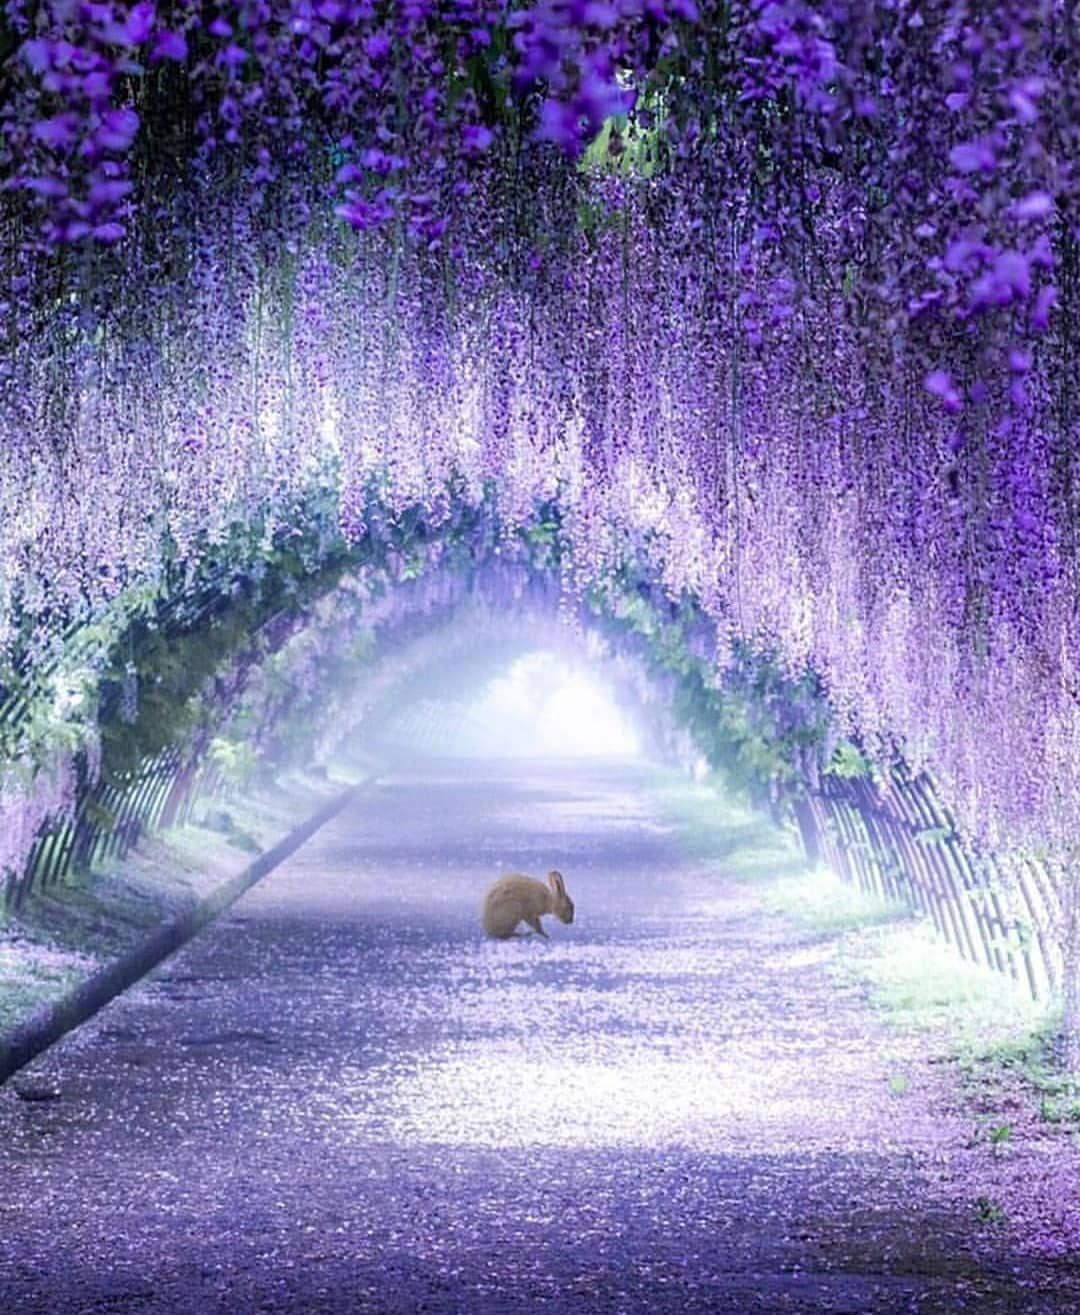 Japan is well known for its cherry blossom trees, but that's not all Parks around the country have created beautiful wisteria tree tunnels all can enjoy.